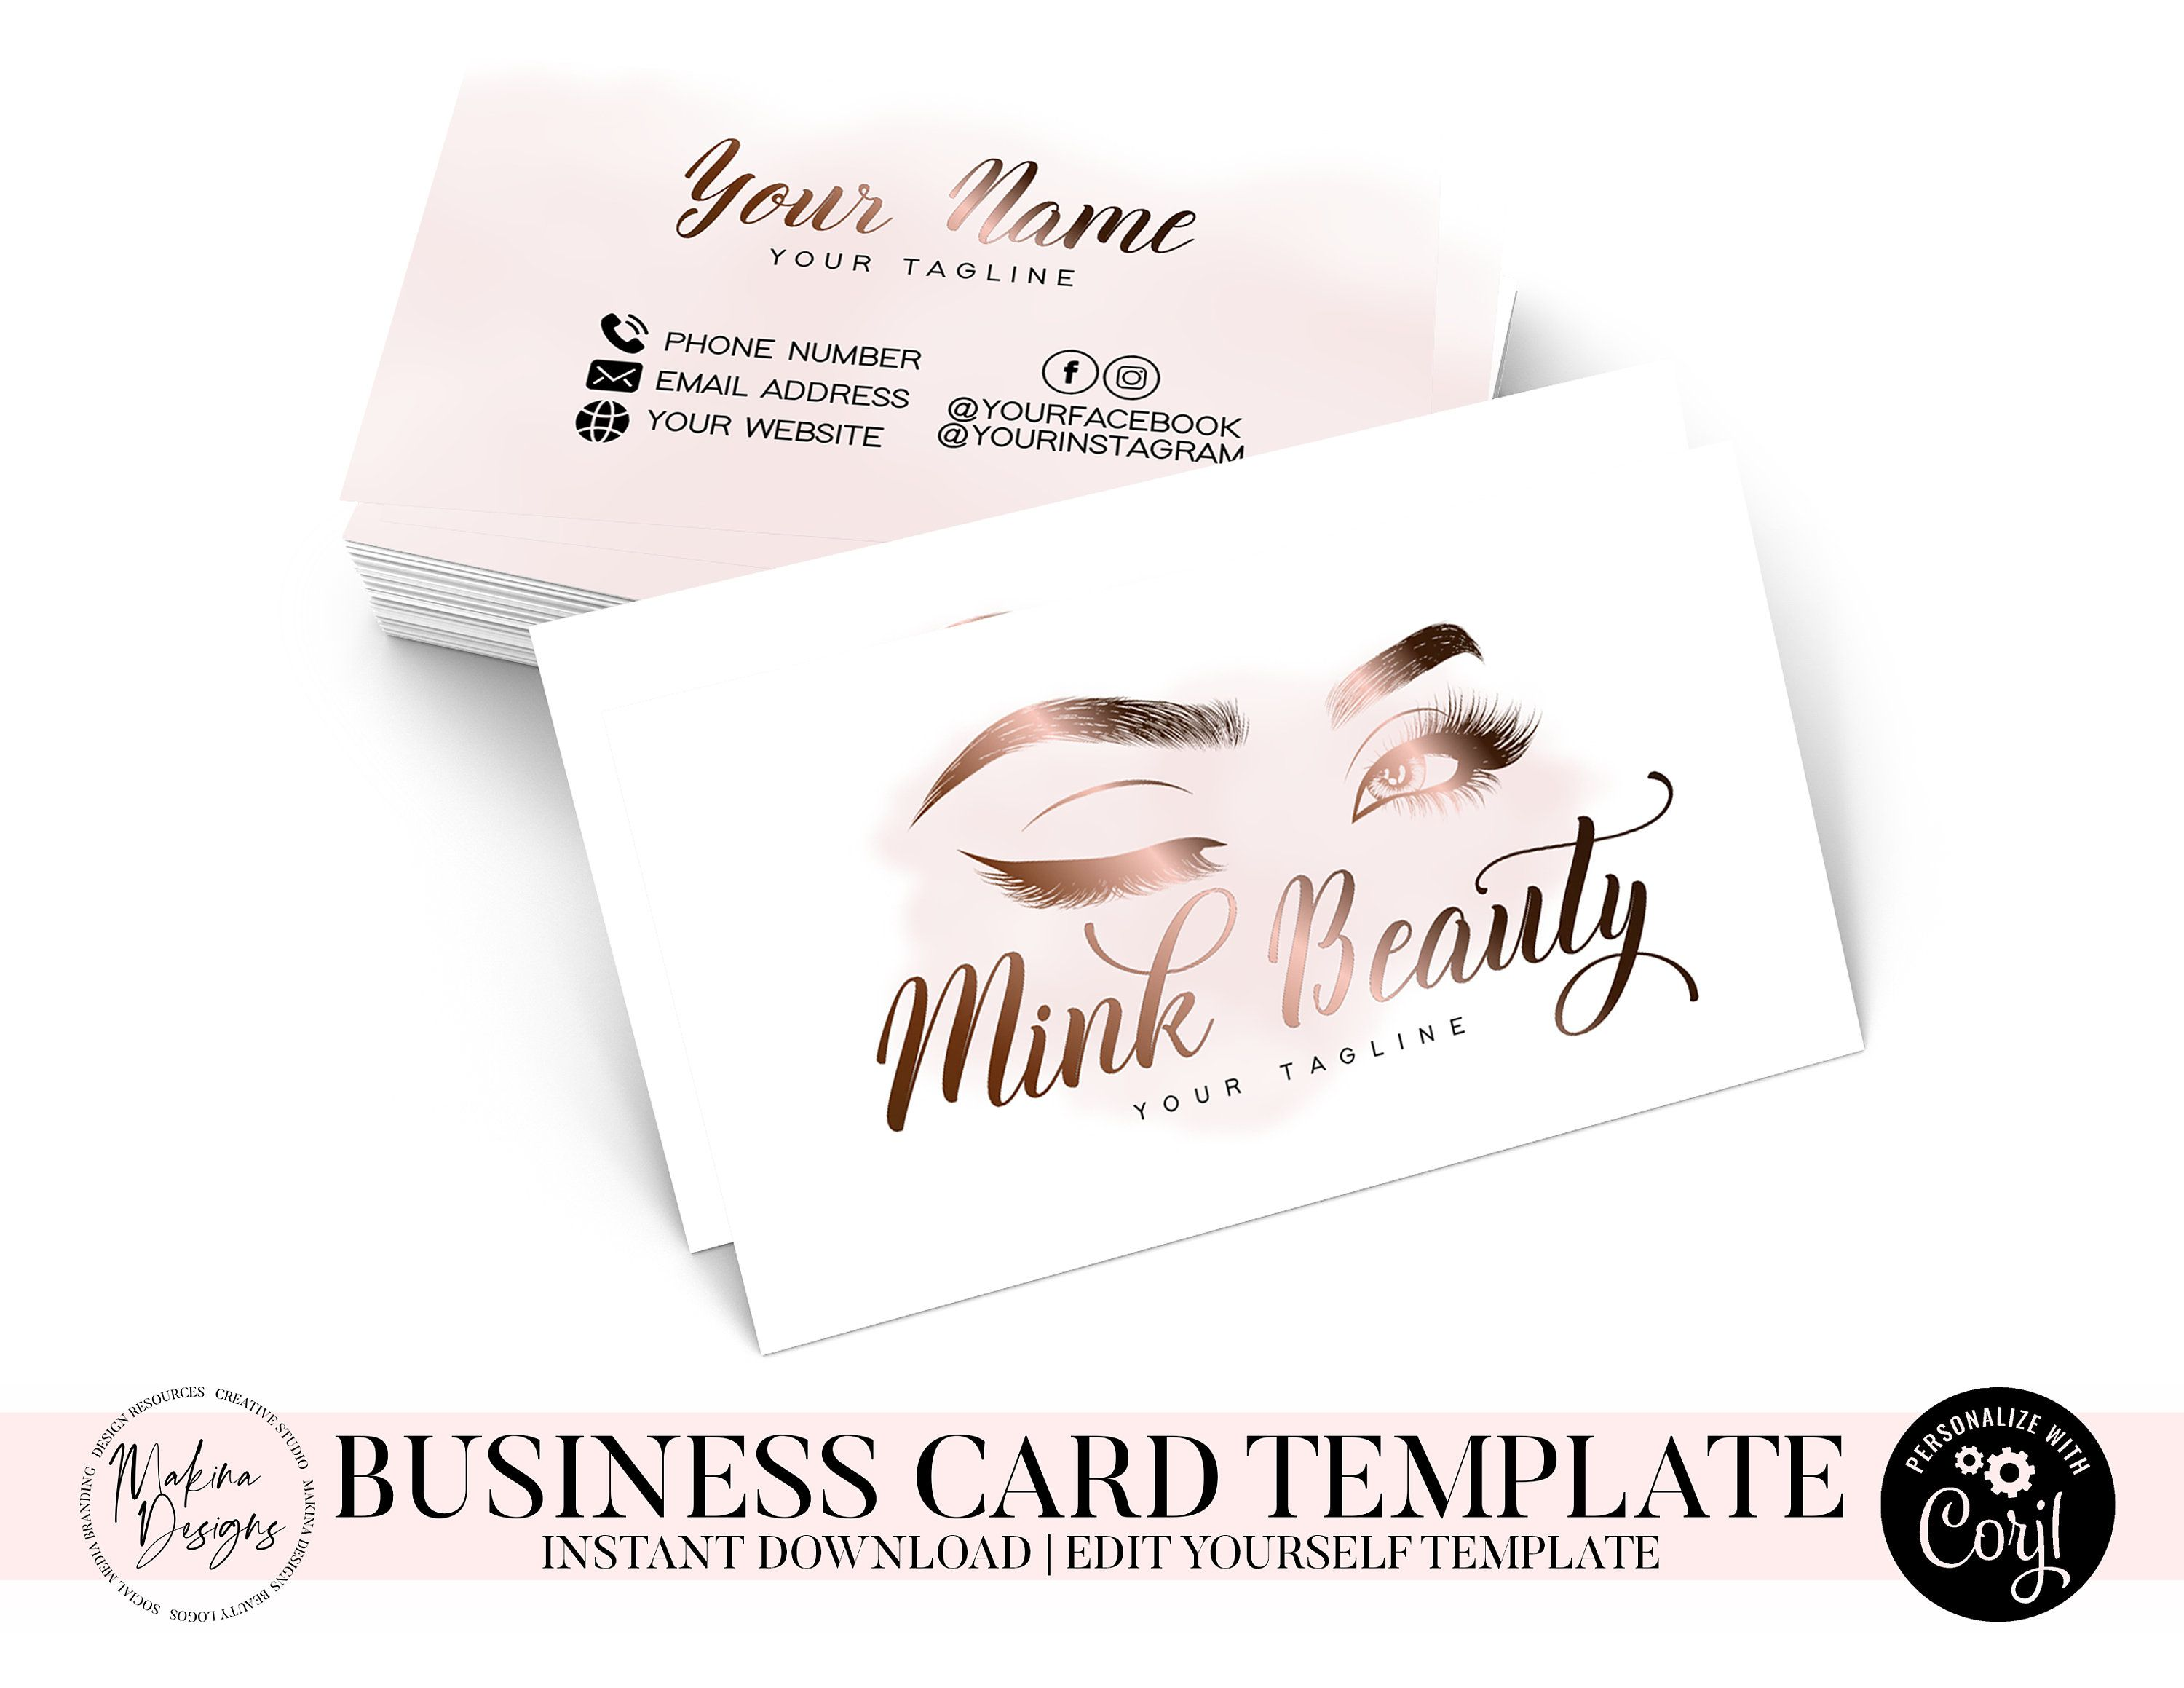 Business Card Template Business Card Card Design Logo Etsy Business Card Template Card Template Card Design